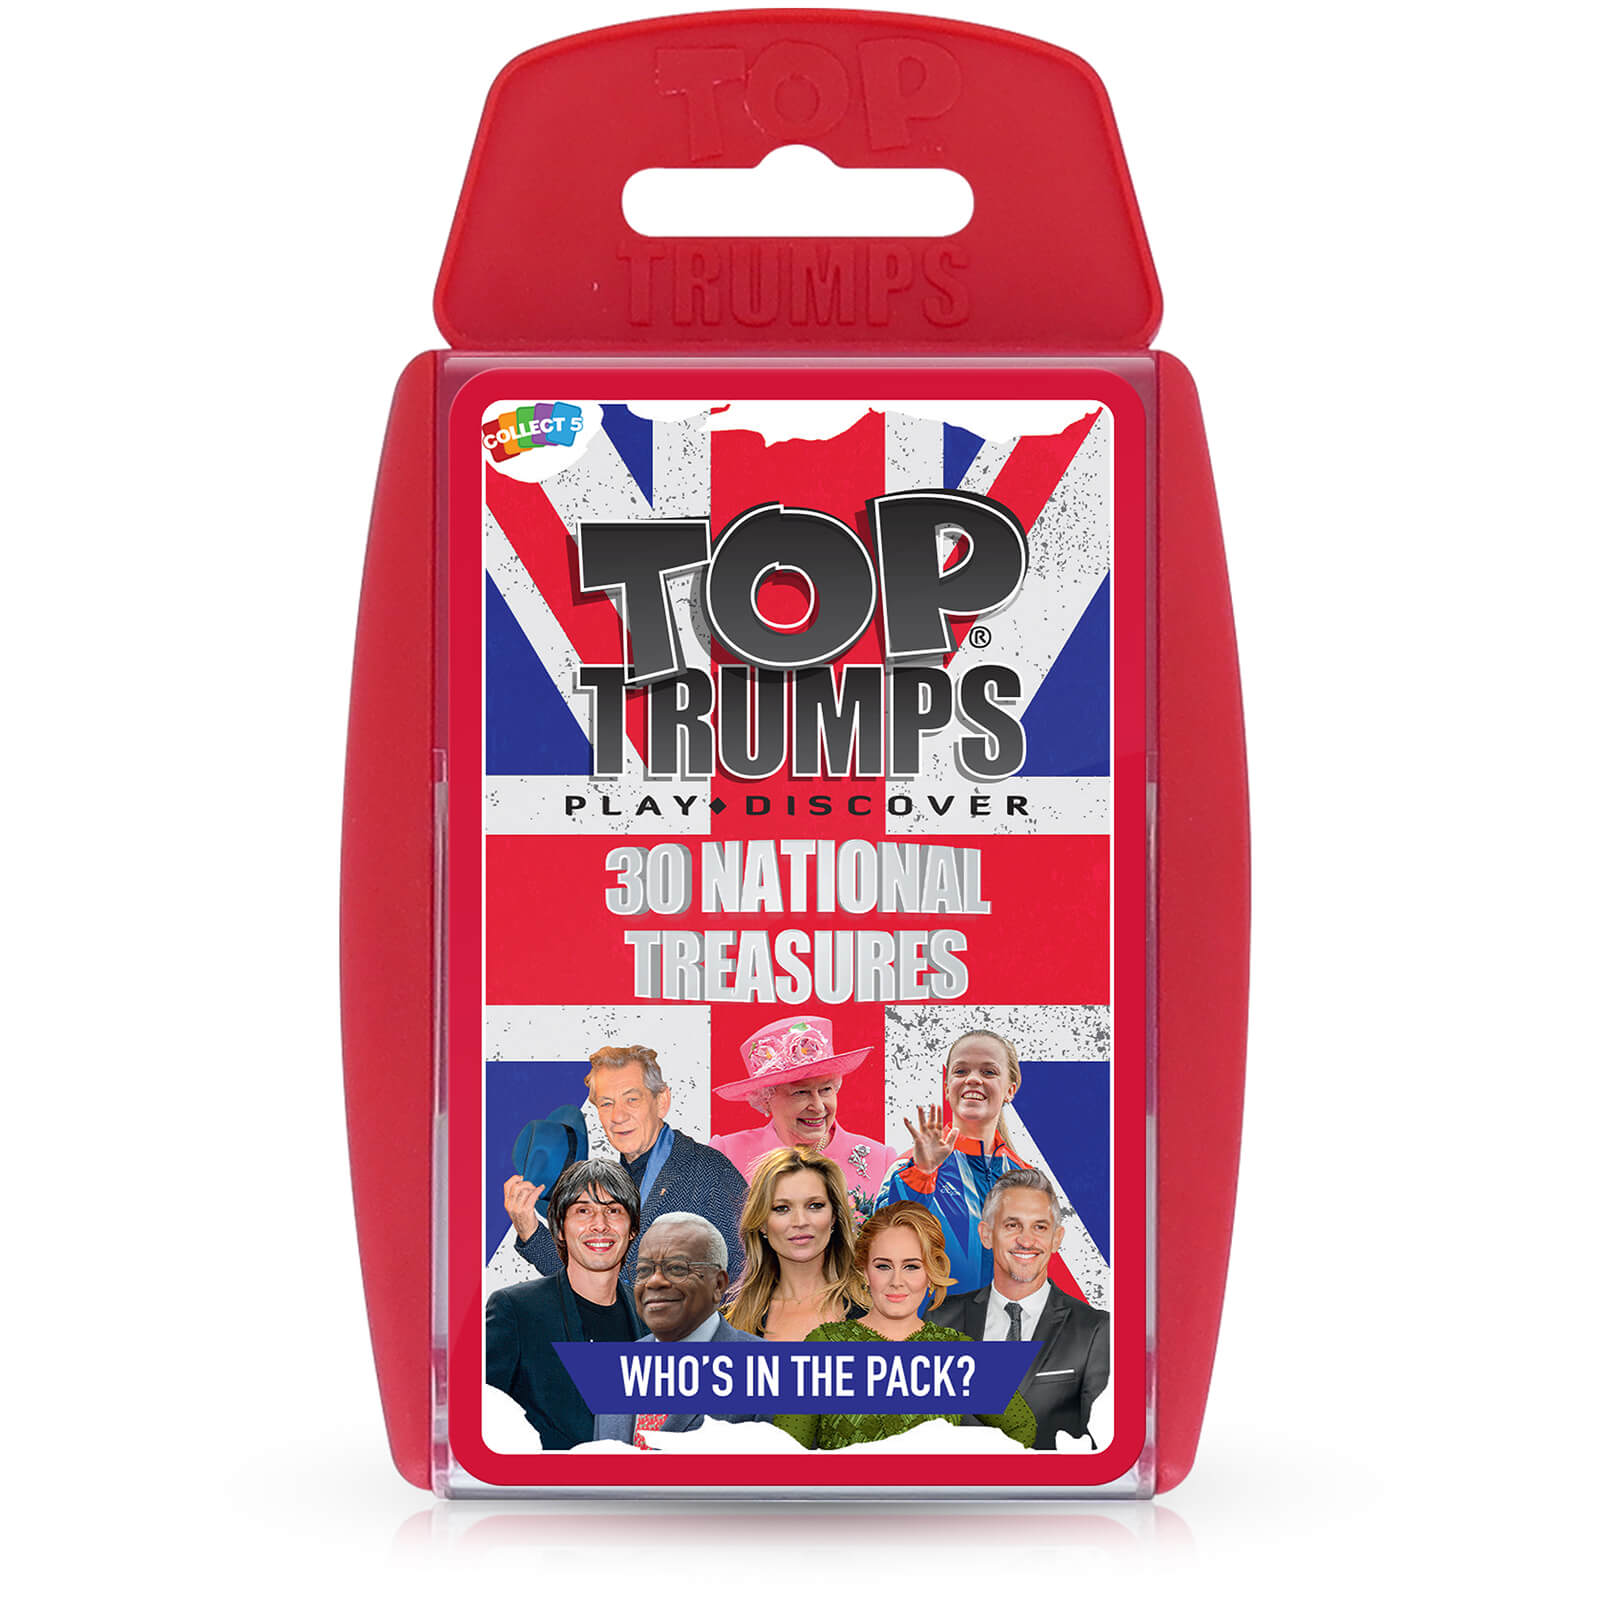 Image of Top Trumps Card Game - National Treasures Edition